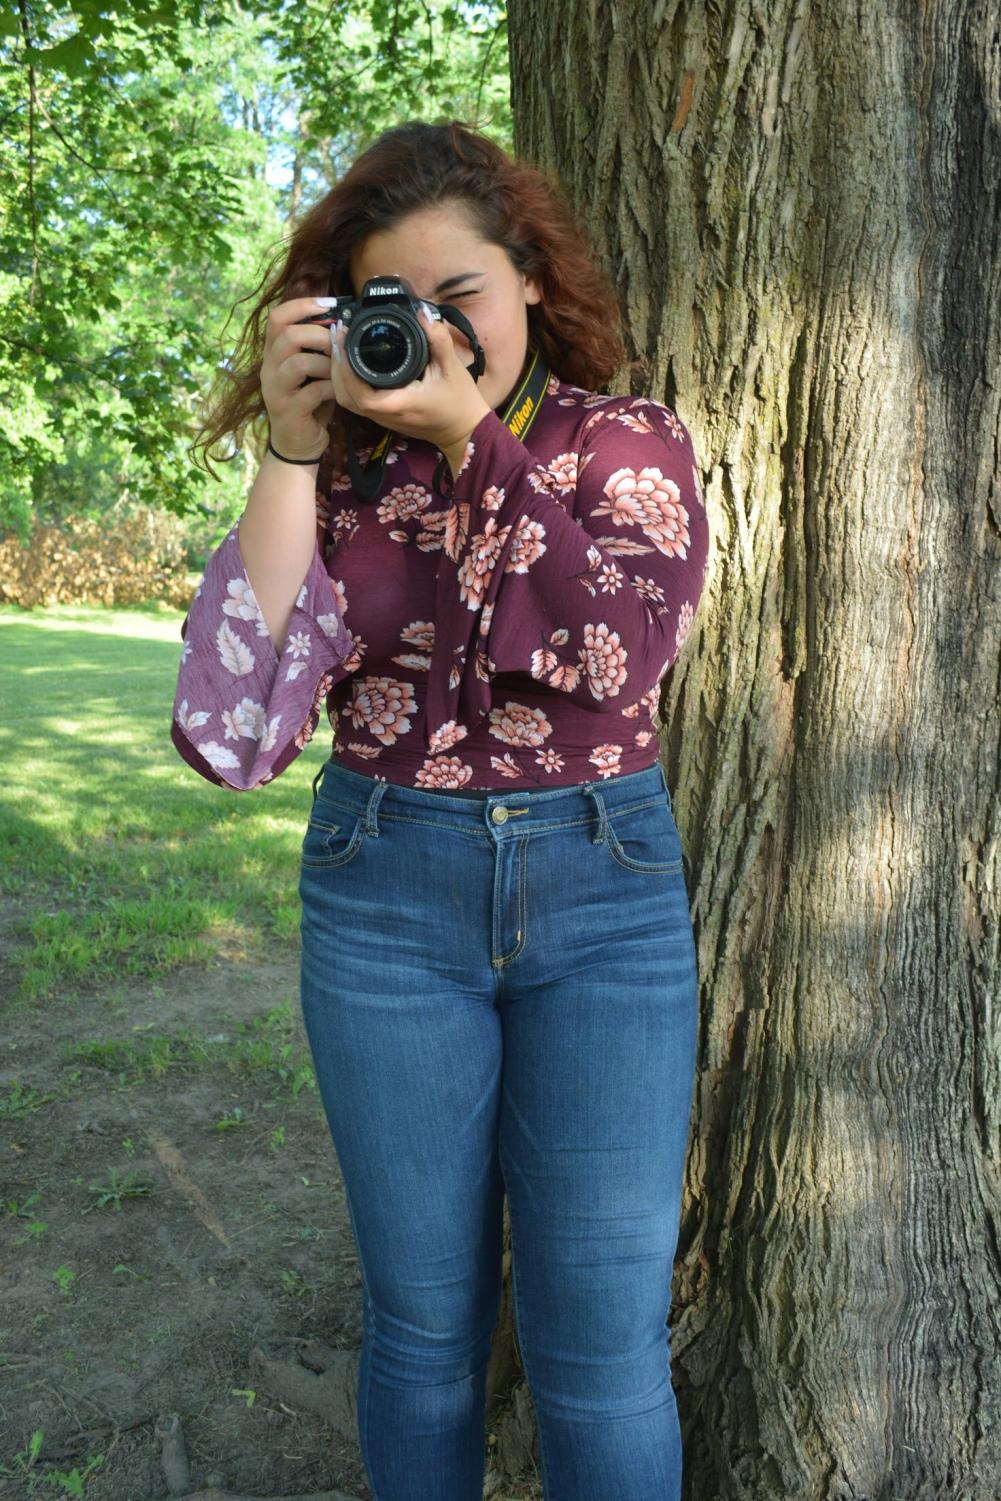 Gillian Teichman's passion for photography has been around for as long as she can recall. She is also a member of the Literary Magazine, which puts together a publication of the best artwork that students submit.